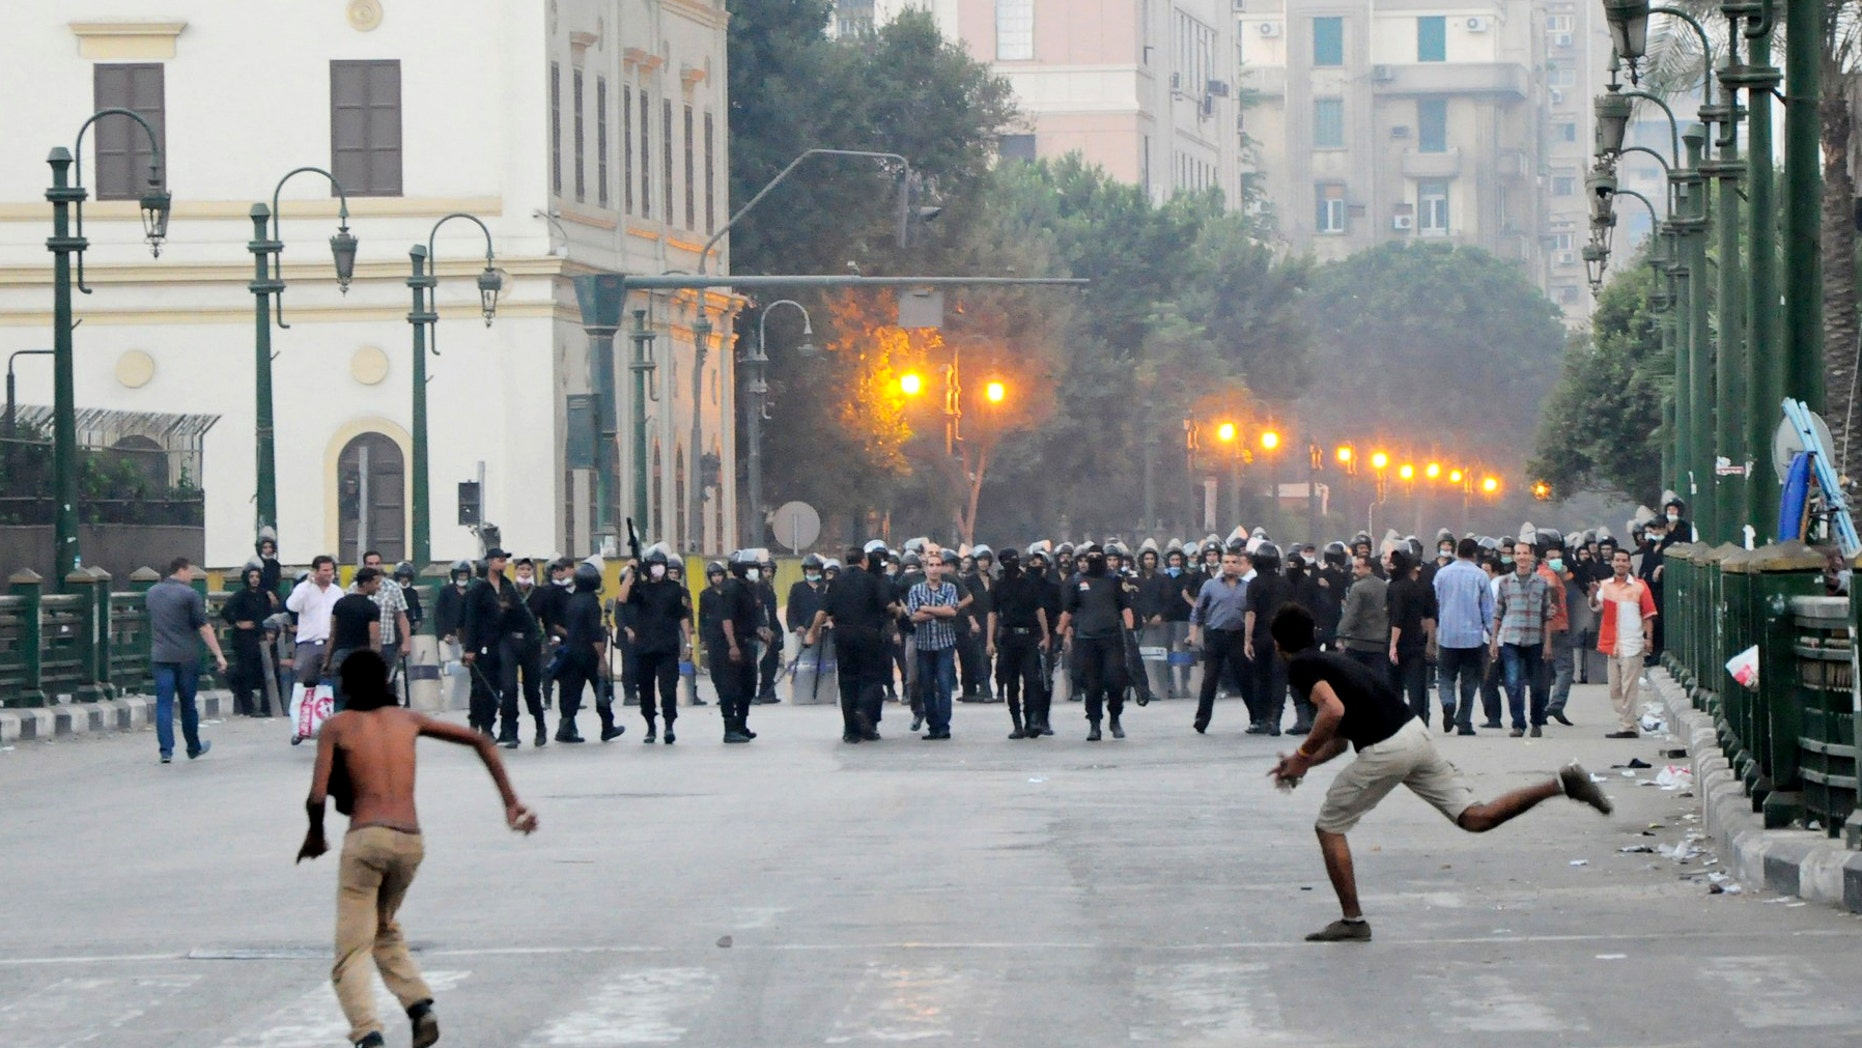 Sept. 15, 2012: Egyptian protesters hurl stones at riot police in downtown Cairo, Egypt, before police cleared the area after days of protests against a film ridiculing the Prophet Muhammad.